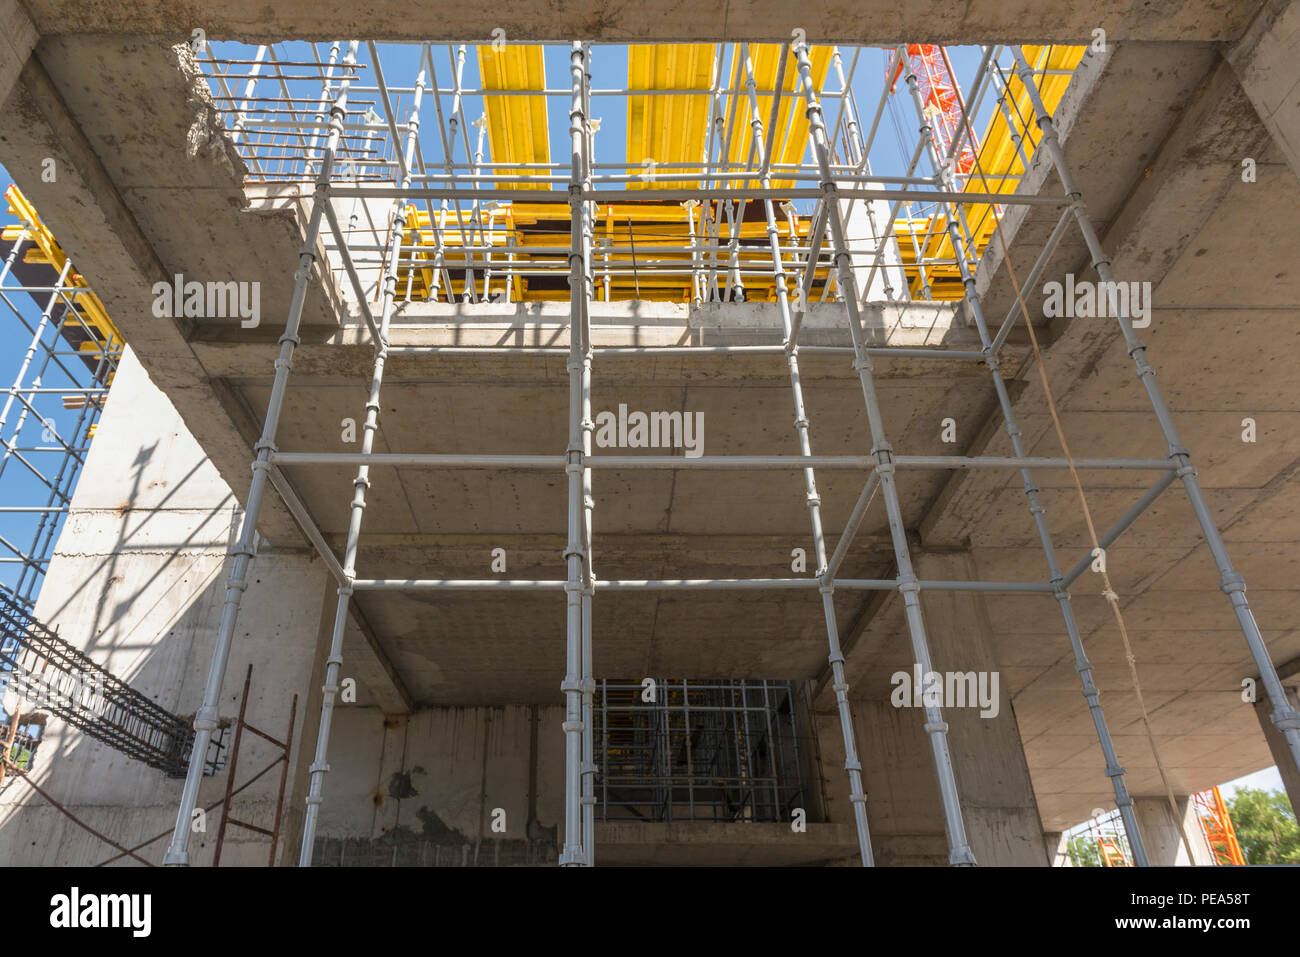 metal concrete structures of the building under construction. scaffolding and supports. bottom view - Stock Image